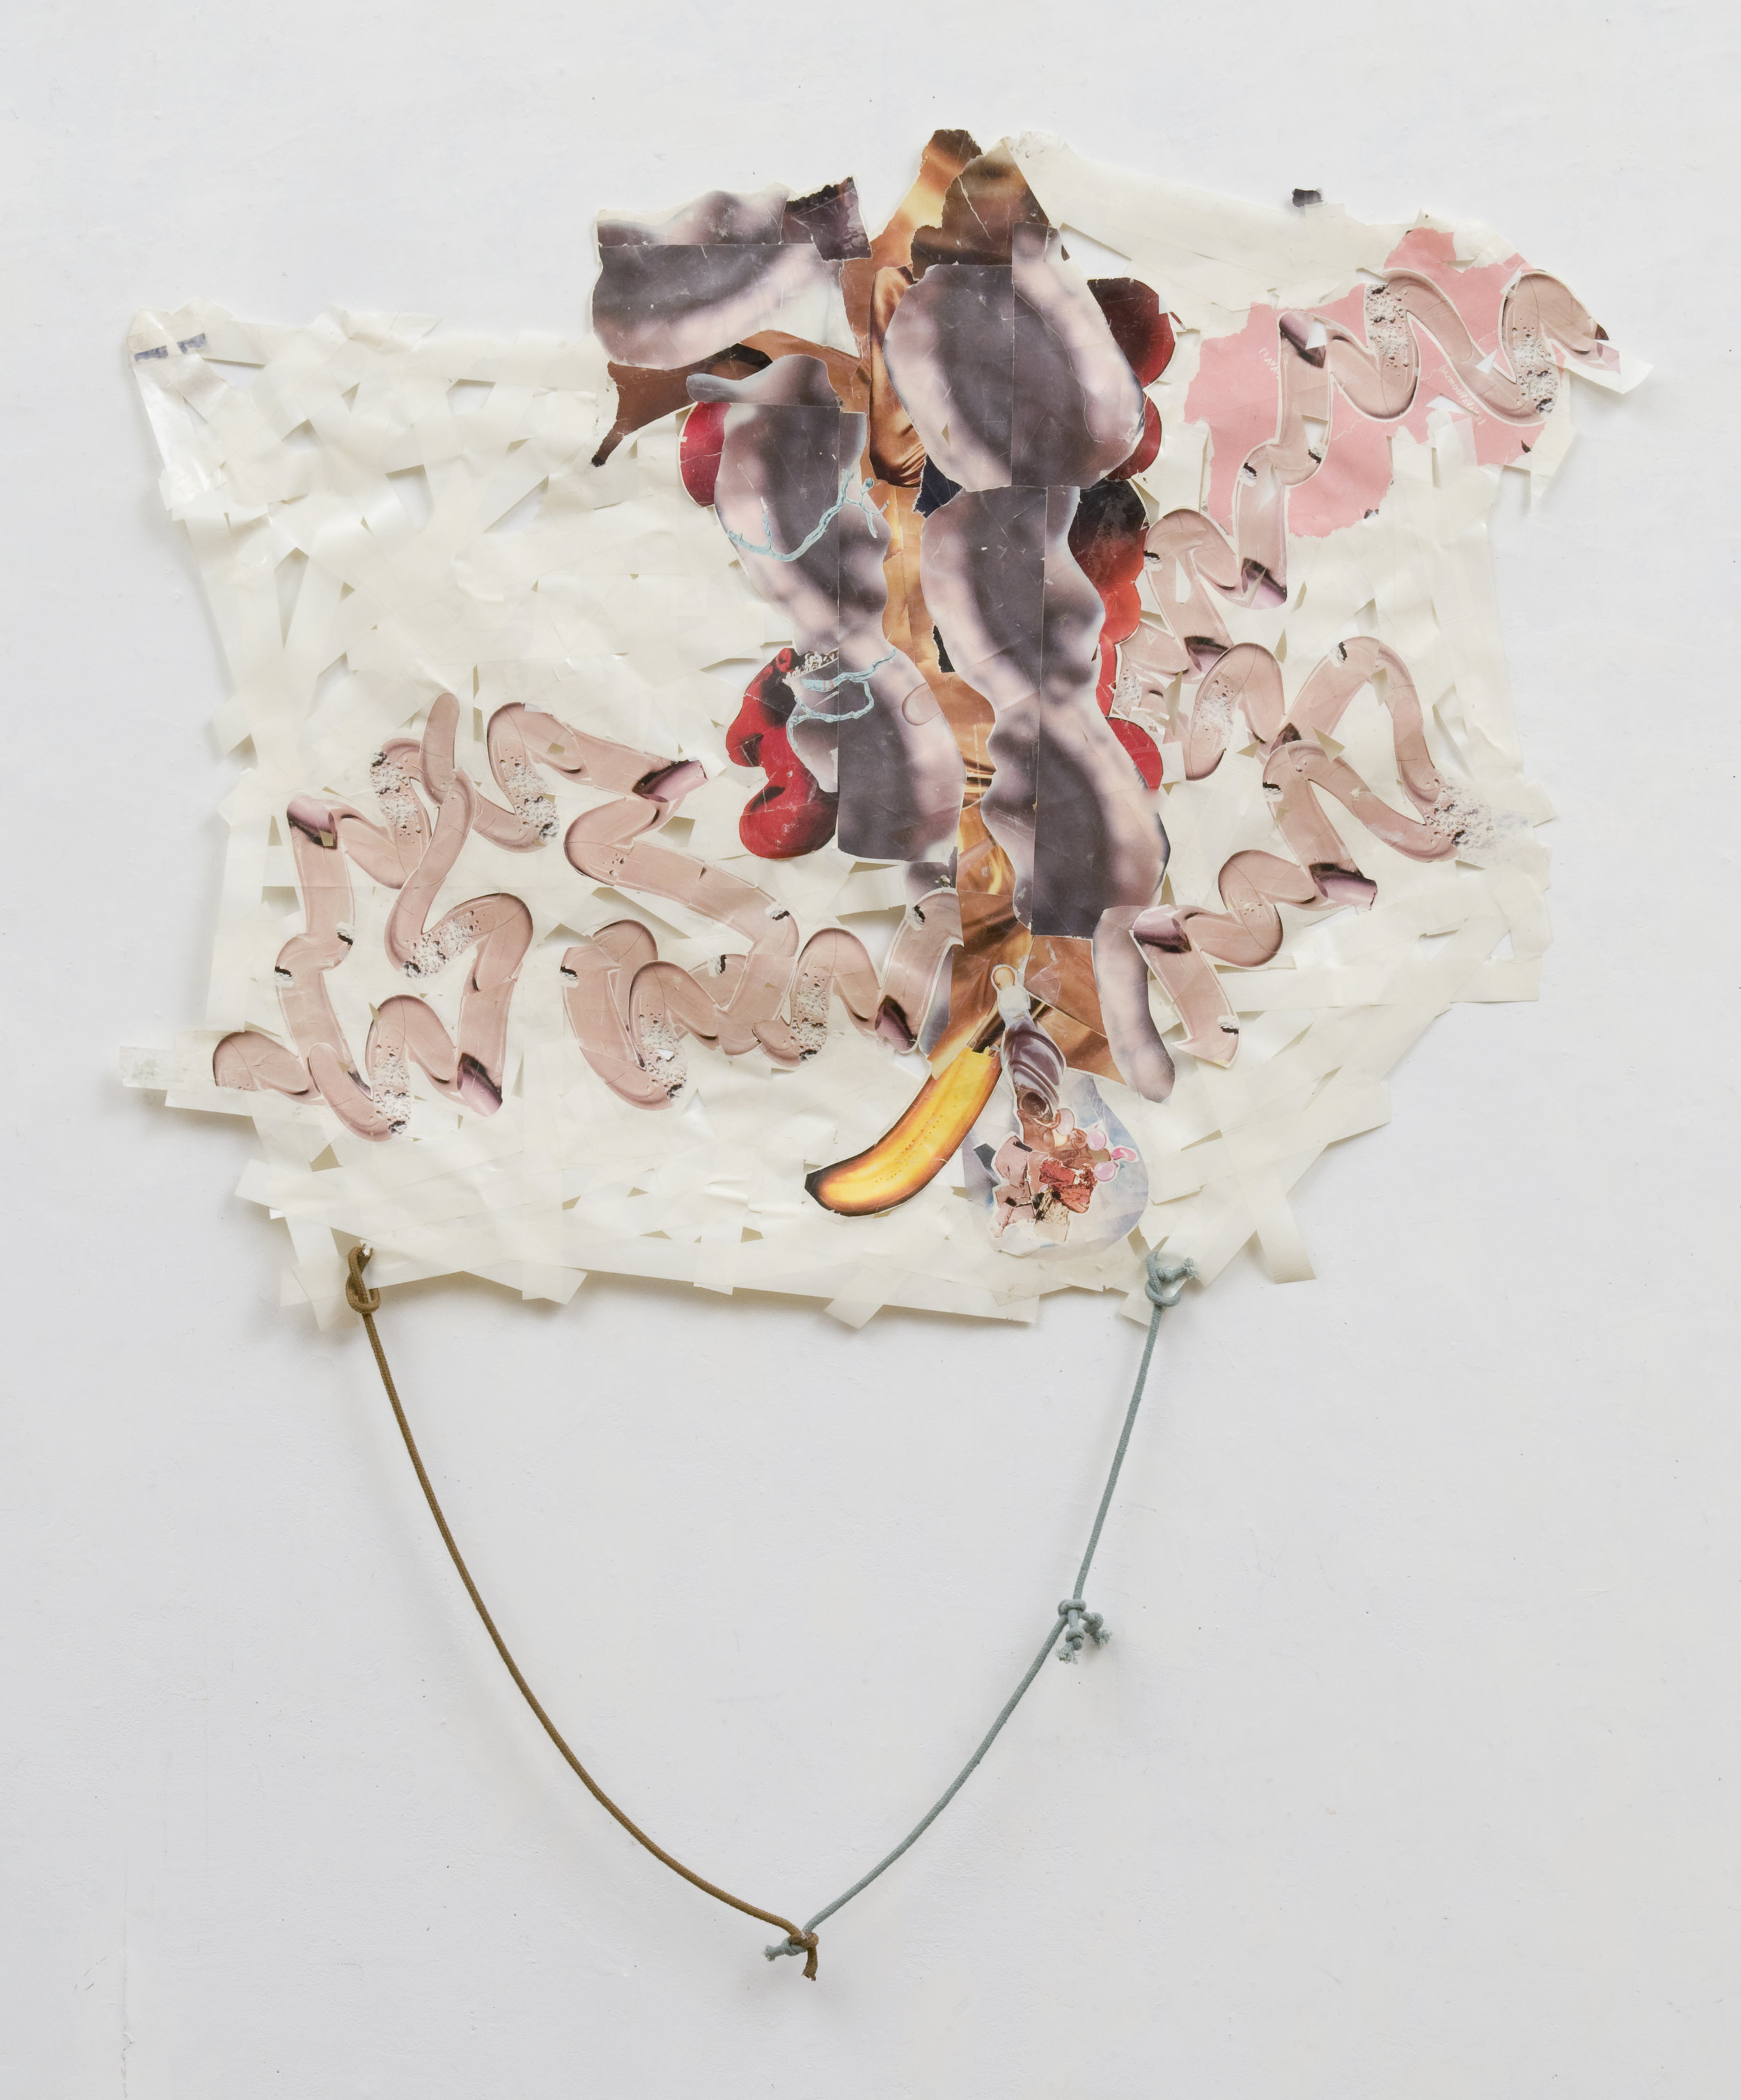 Predictions of My Own Demise , 2008 Magazine transferred onto tape, bag handles 40 x 31 inches